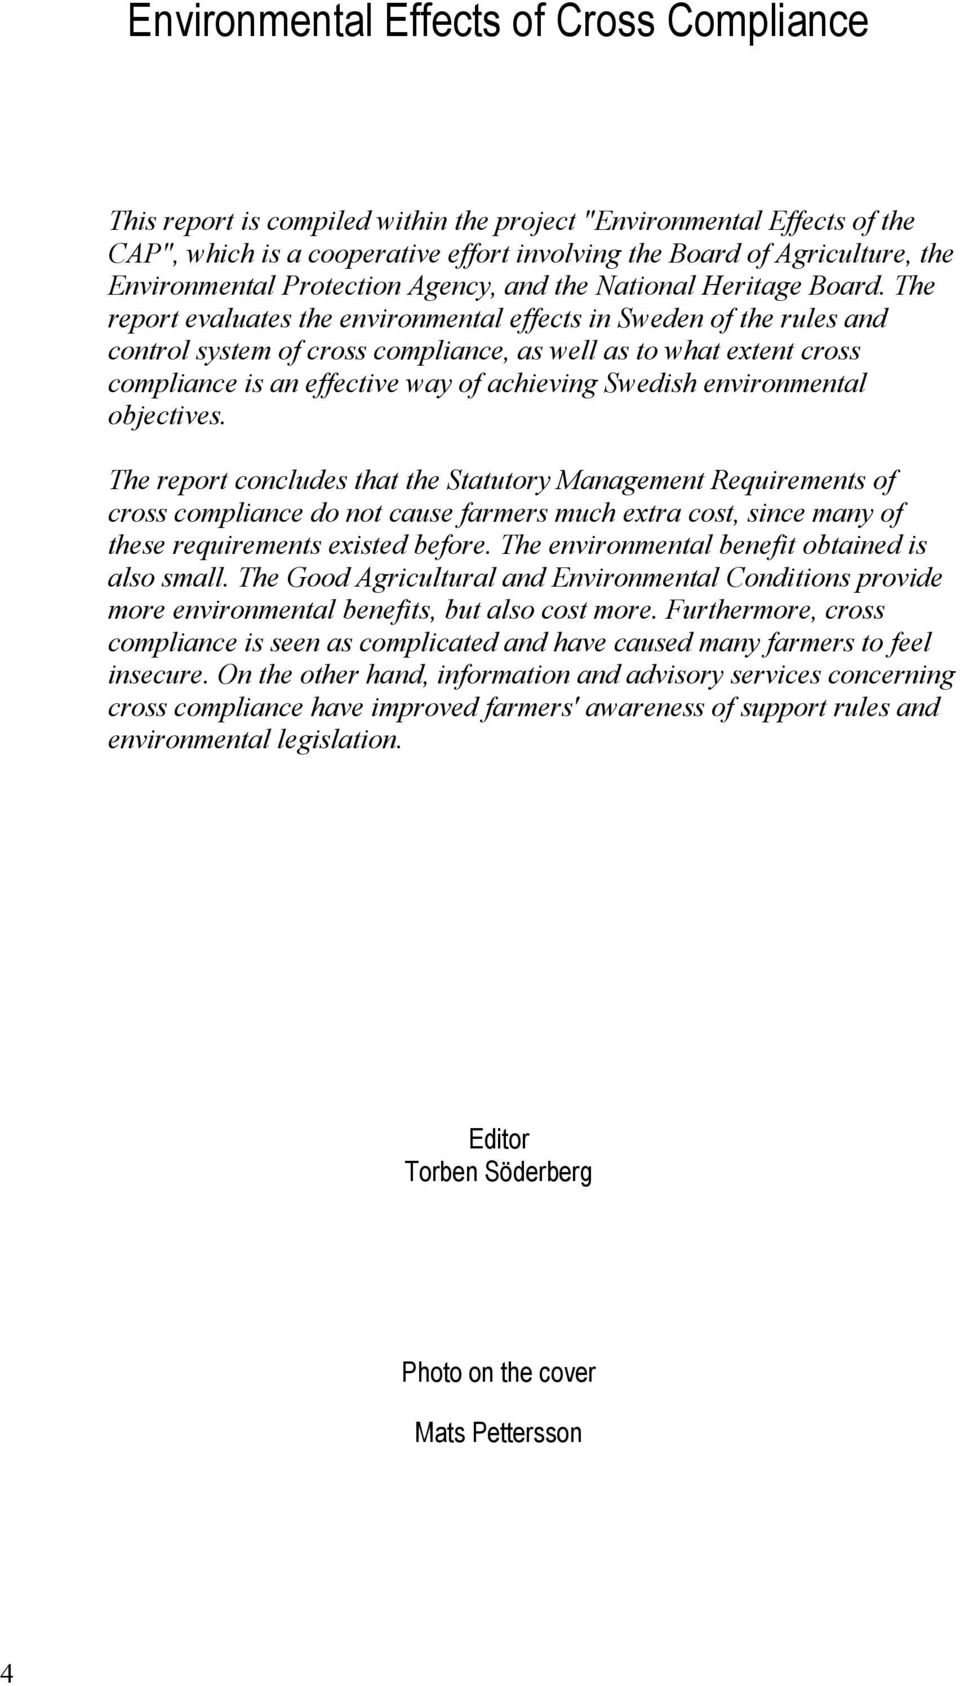 The report evaluates the environmental effects in Sweden of the rules and control system of cross compliance, as well as to what extent cross compliance is an effective way of achieving Swedish